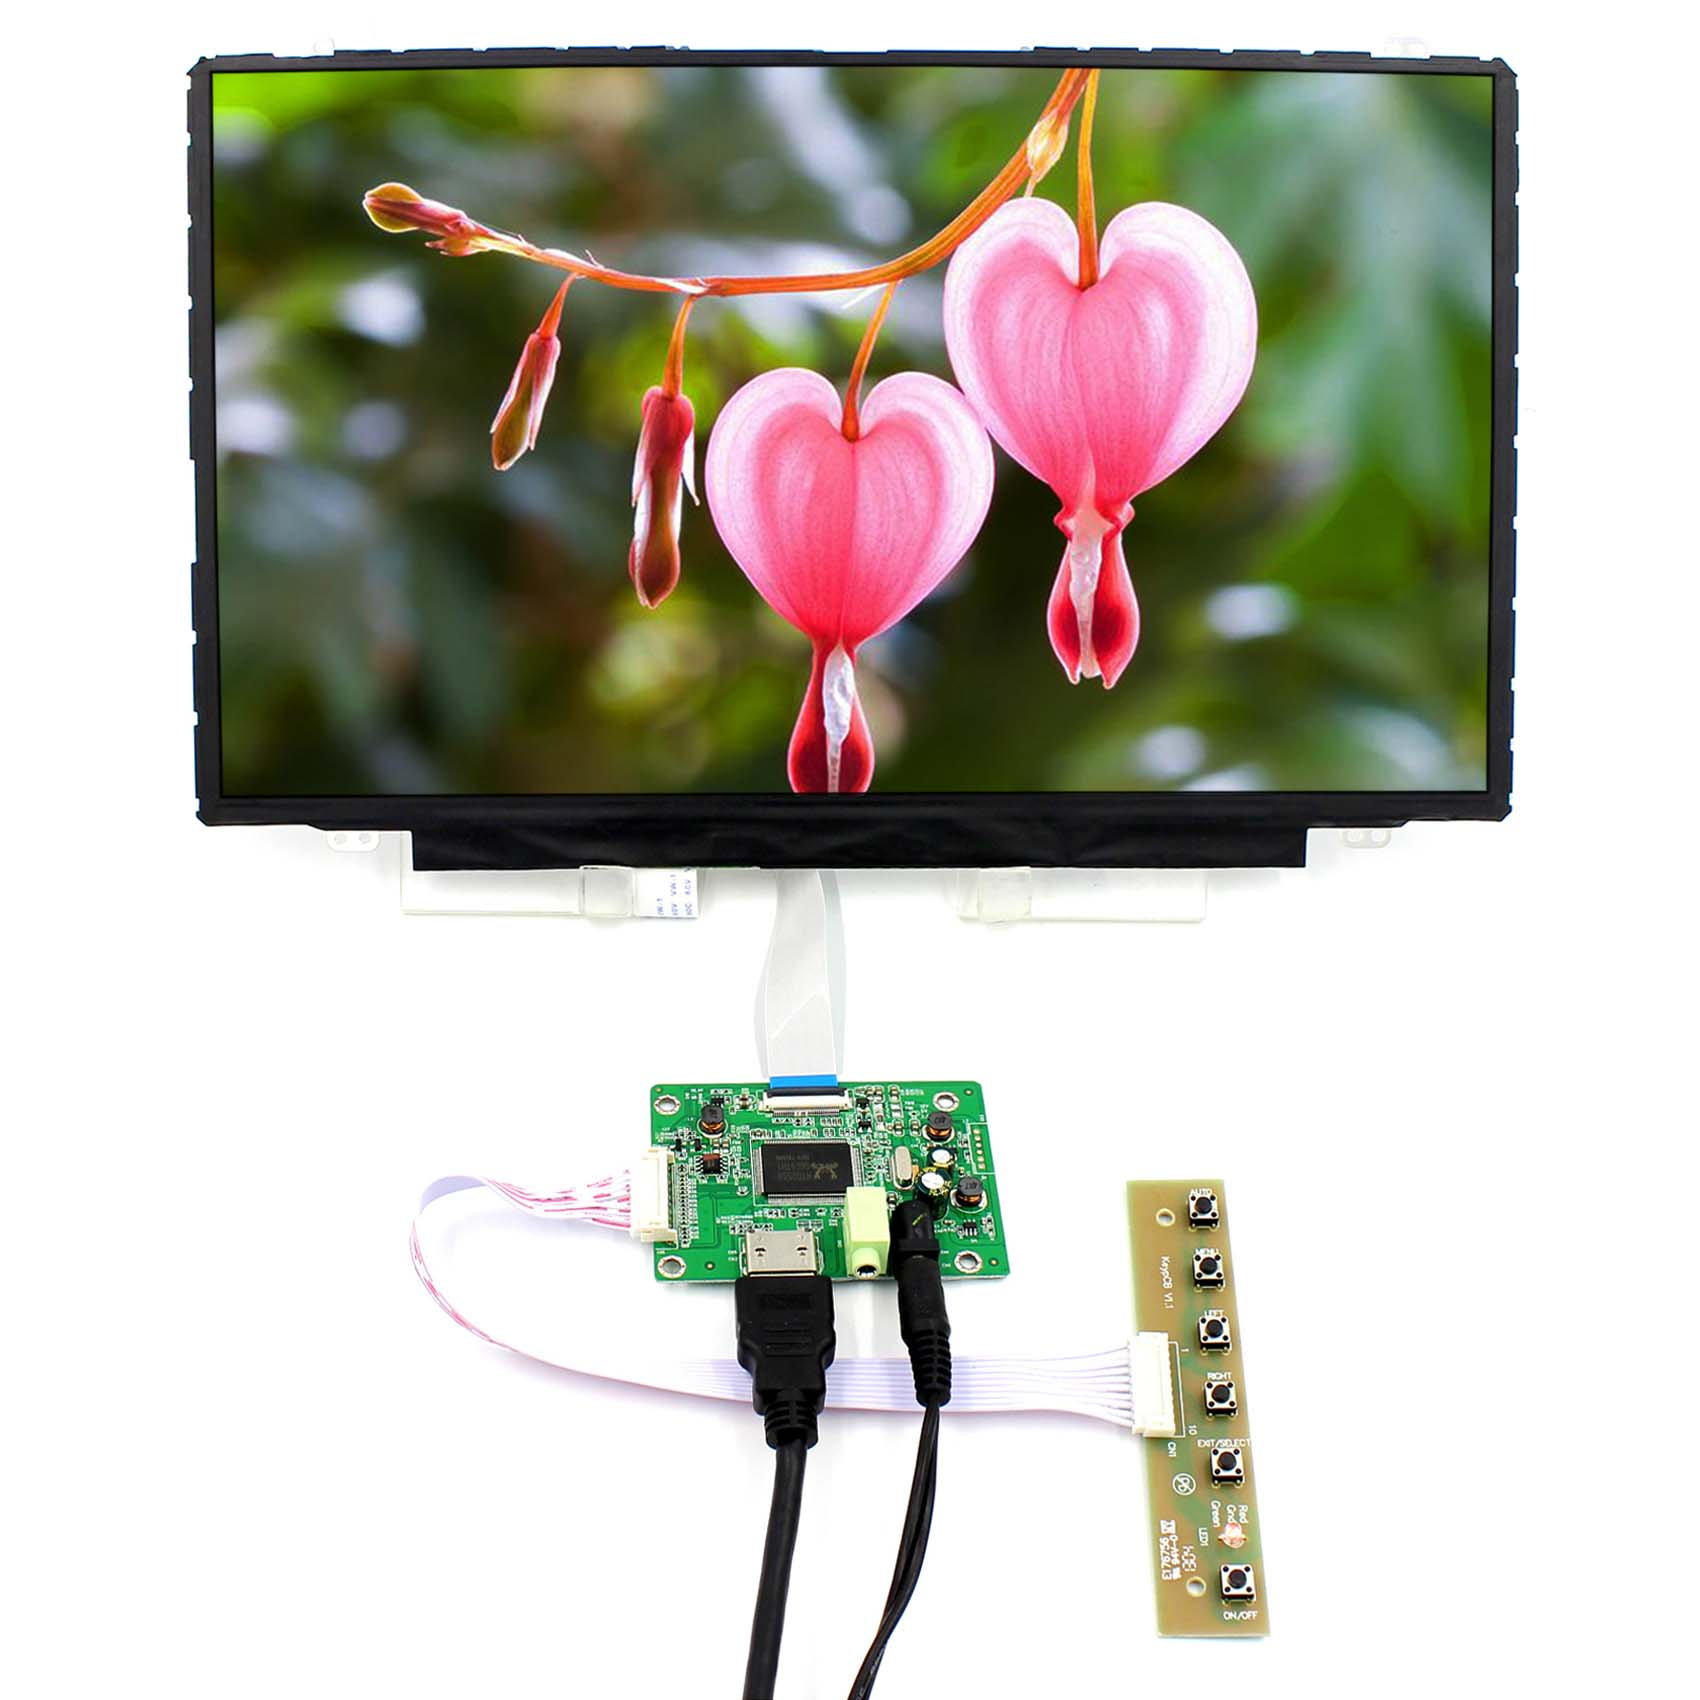 HDMI LCD Controller Board+14inch 1920x1080 NV140FHM-A20 IPS LCD ScreenHDMI LCD Controller Board+14inch 1920x1080 NV140FHM-A20 IPS LCD Screen